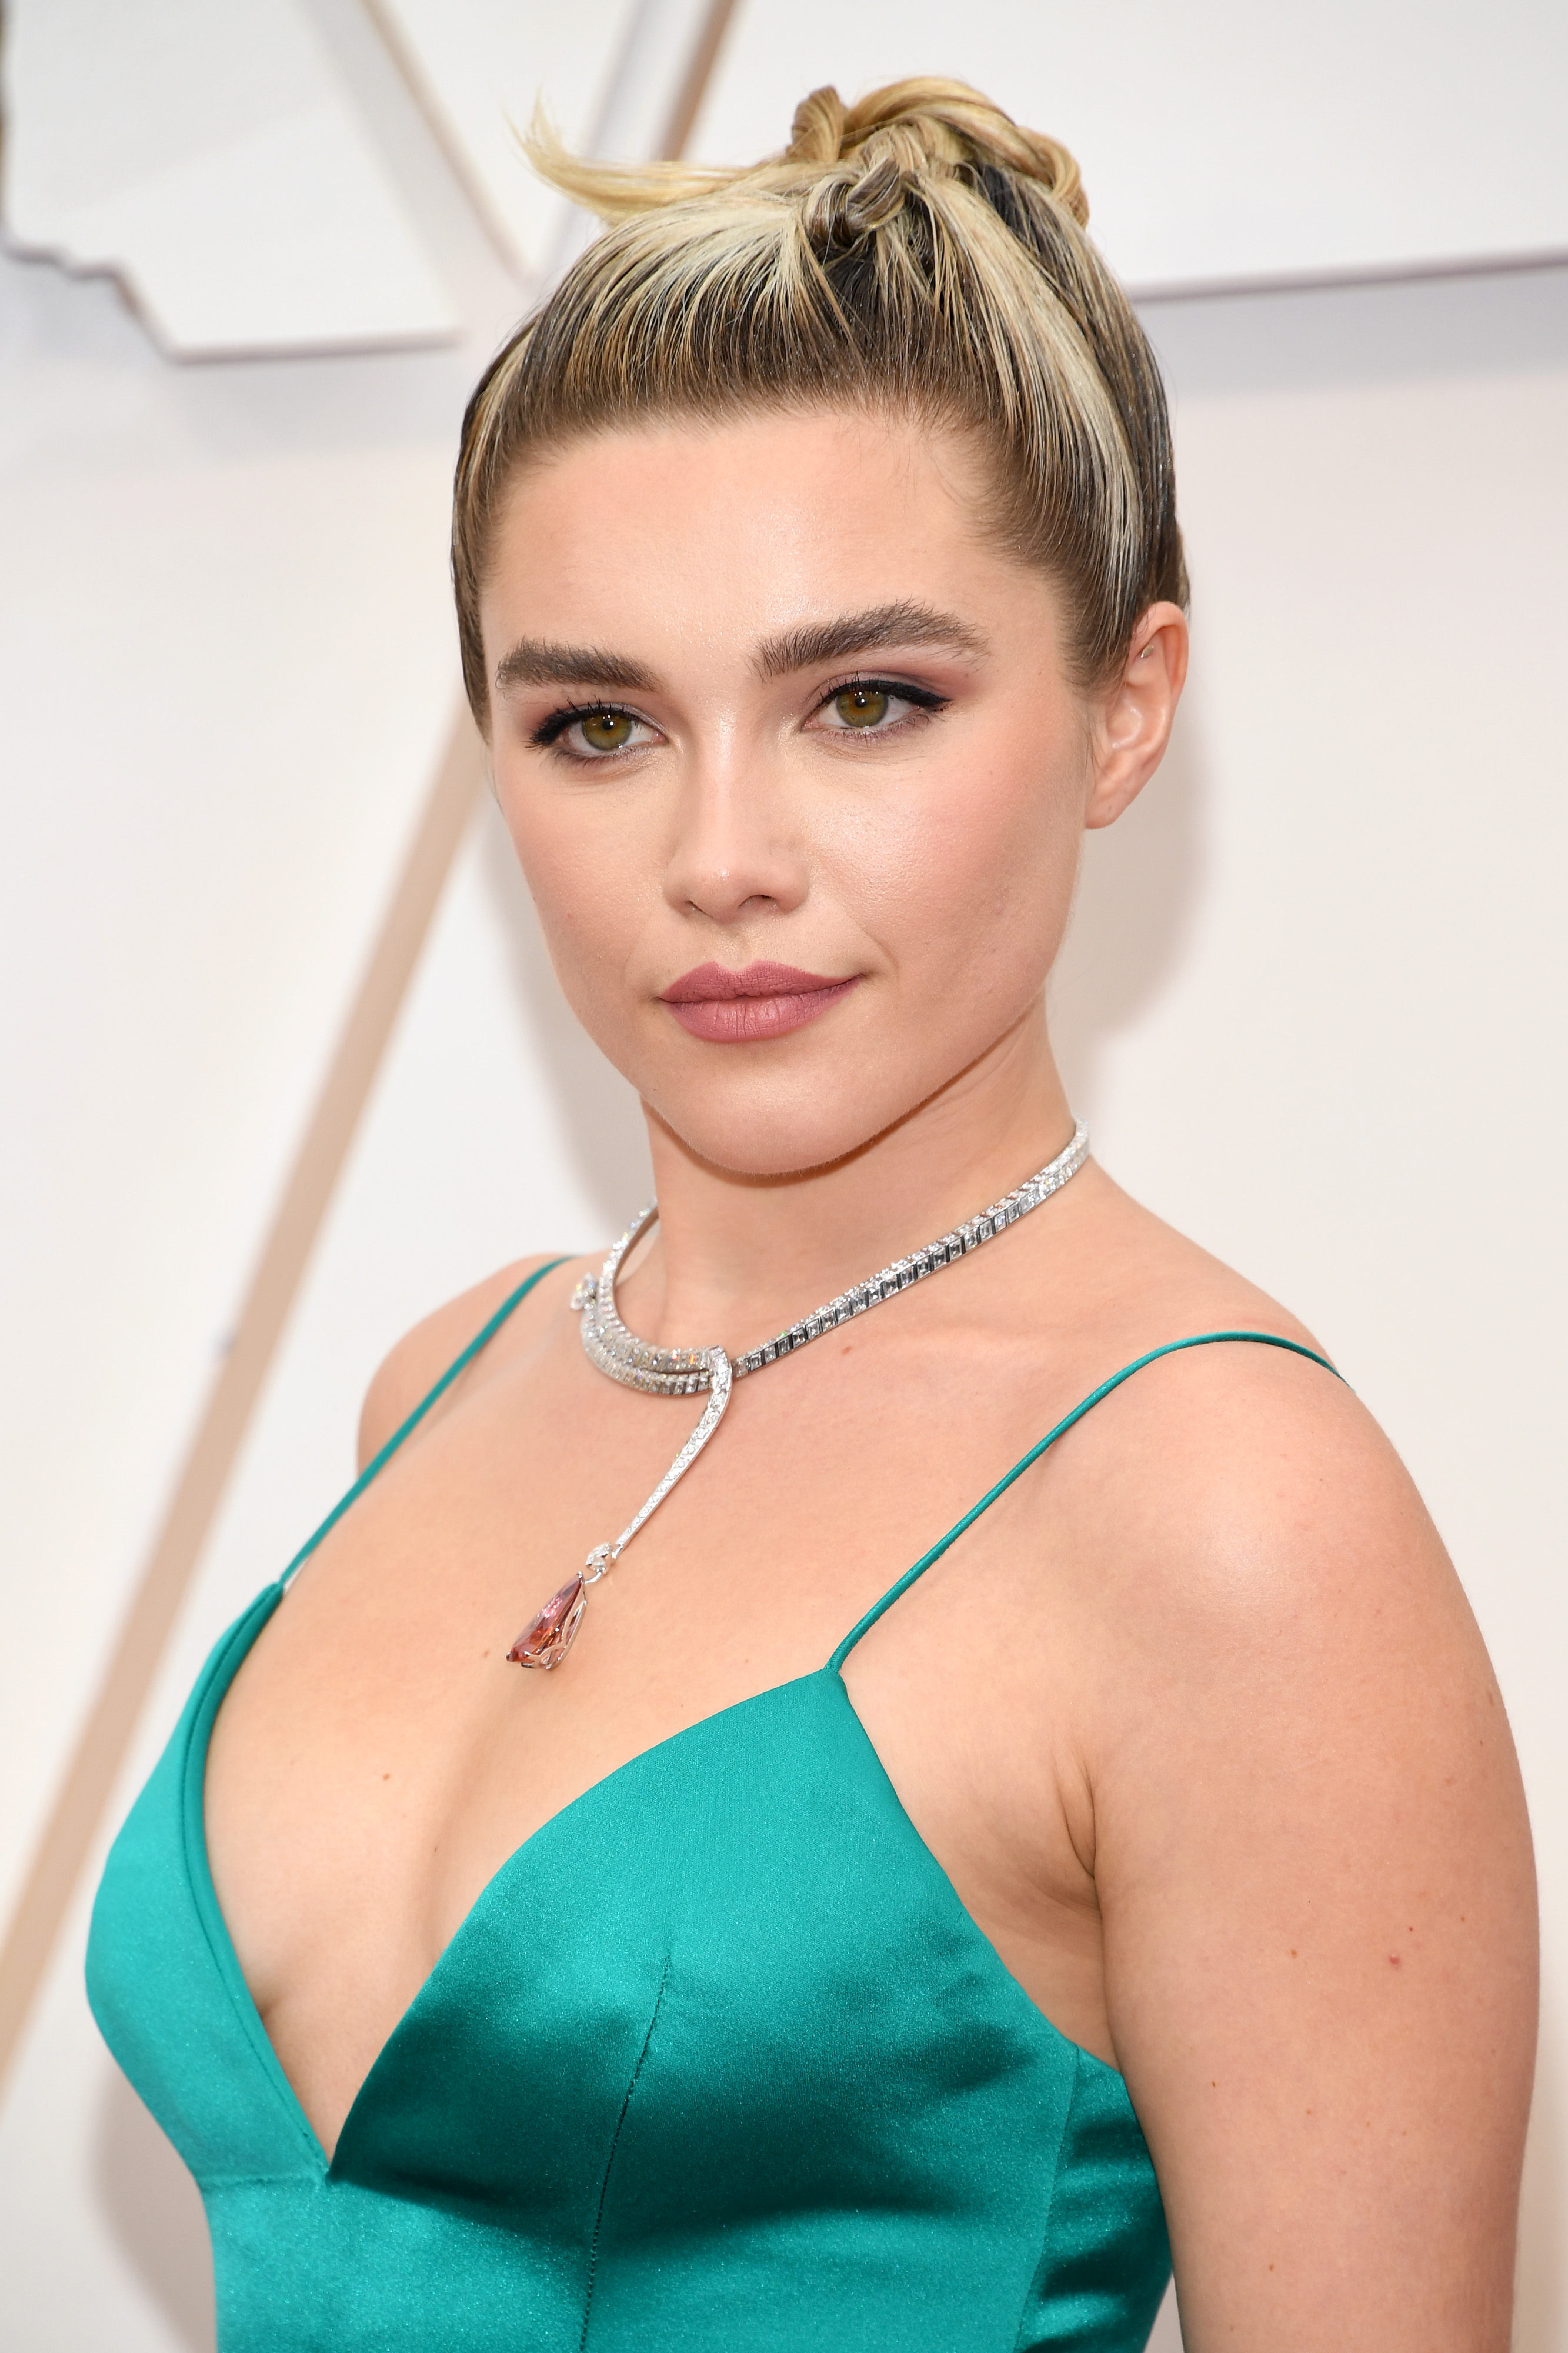 Florence Pugh at an event for The Oscars (2020)